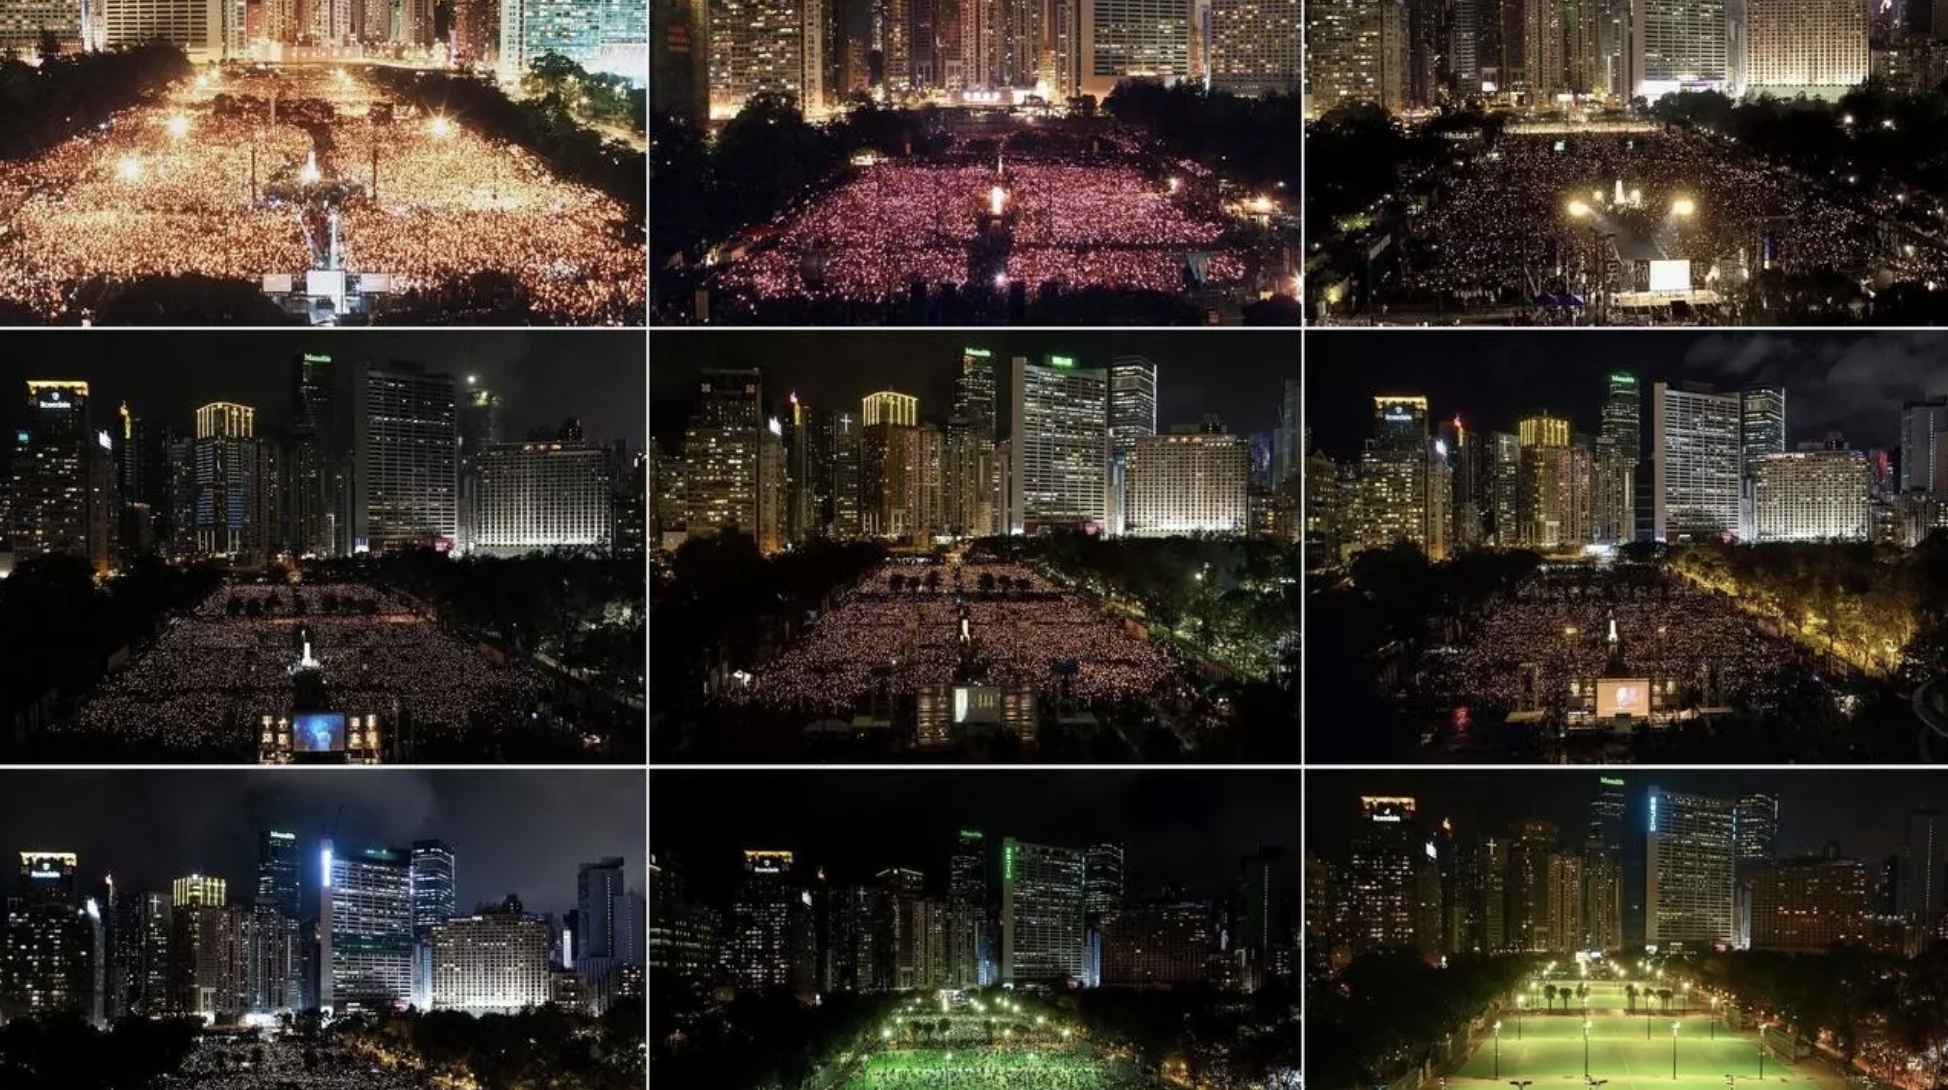 Hong Kong Park Empty on Tiananmen Anniversary but Protests Flicker